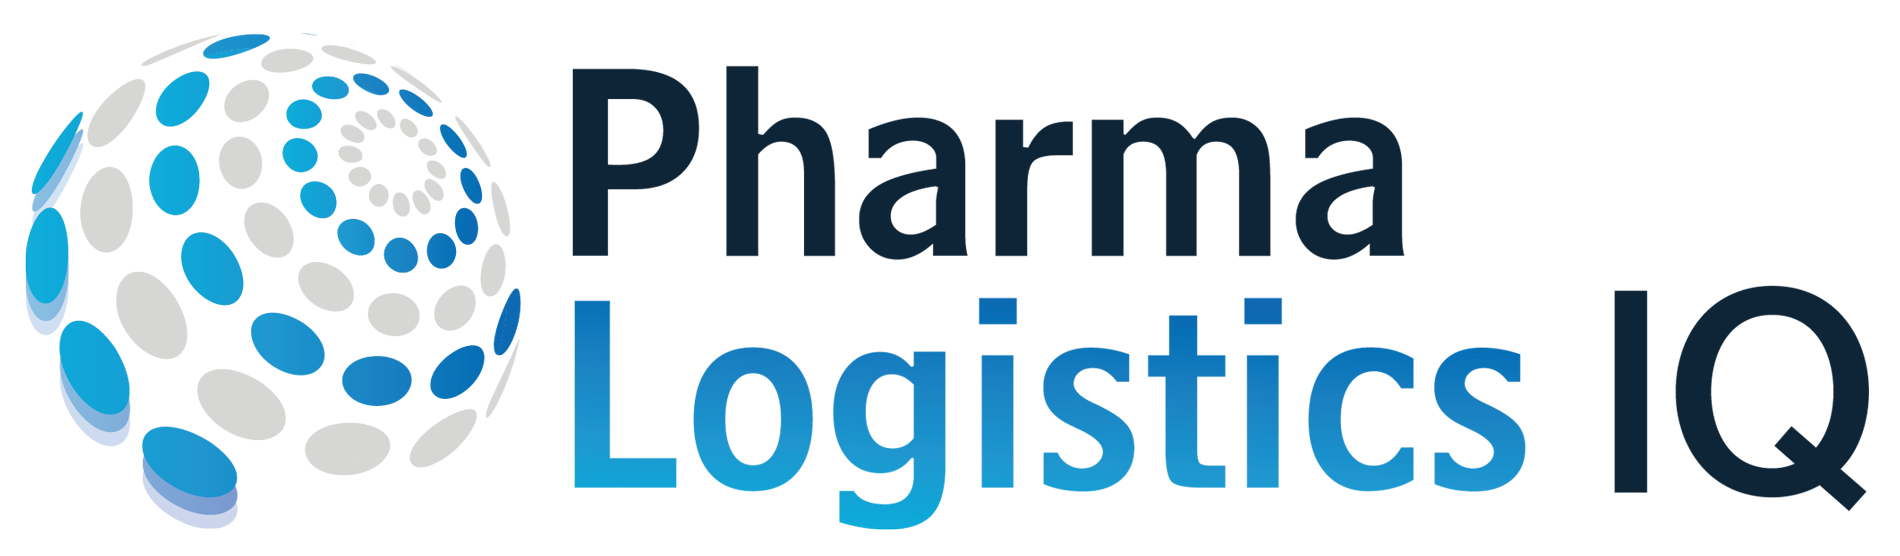 Top Trends in pharma logistics for 2019